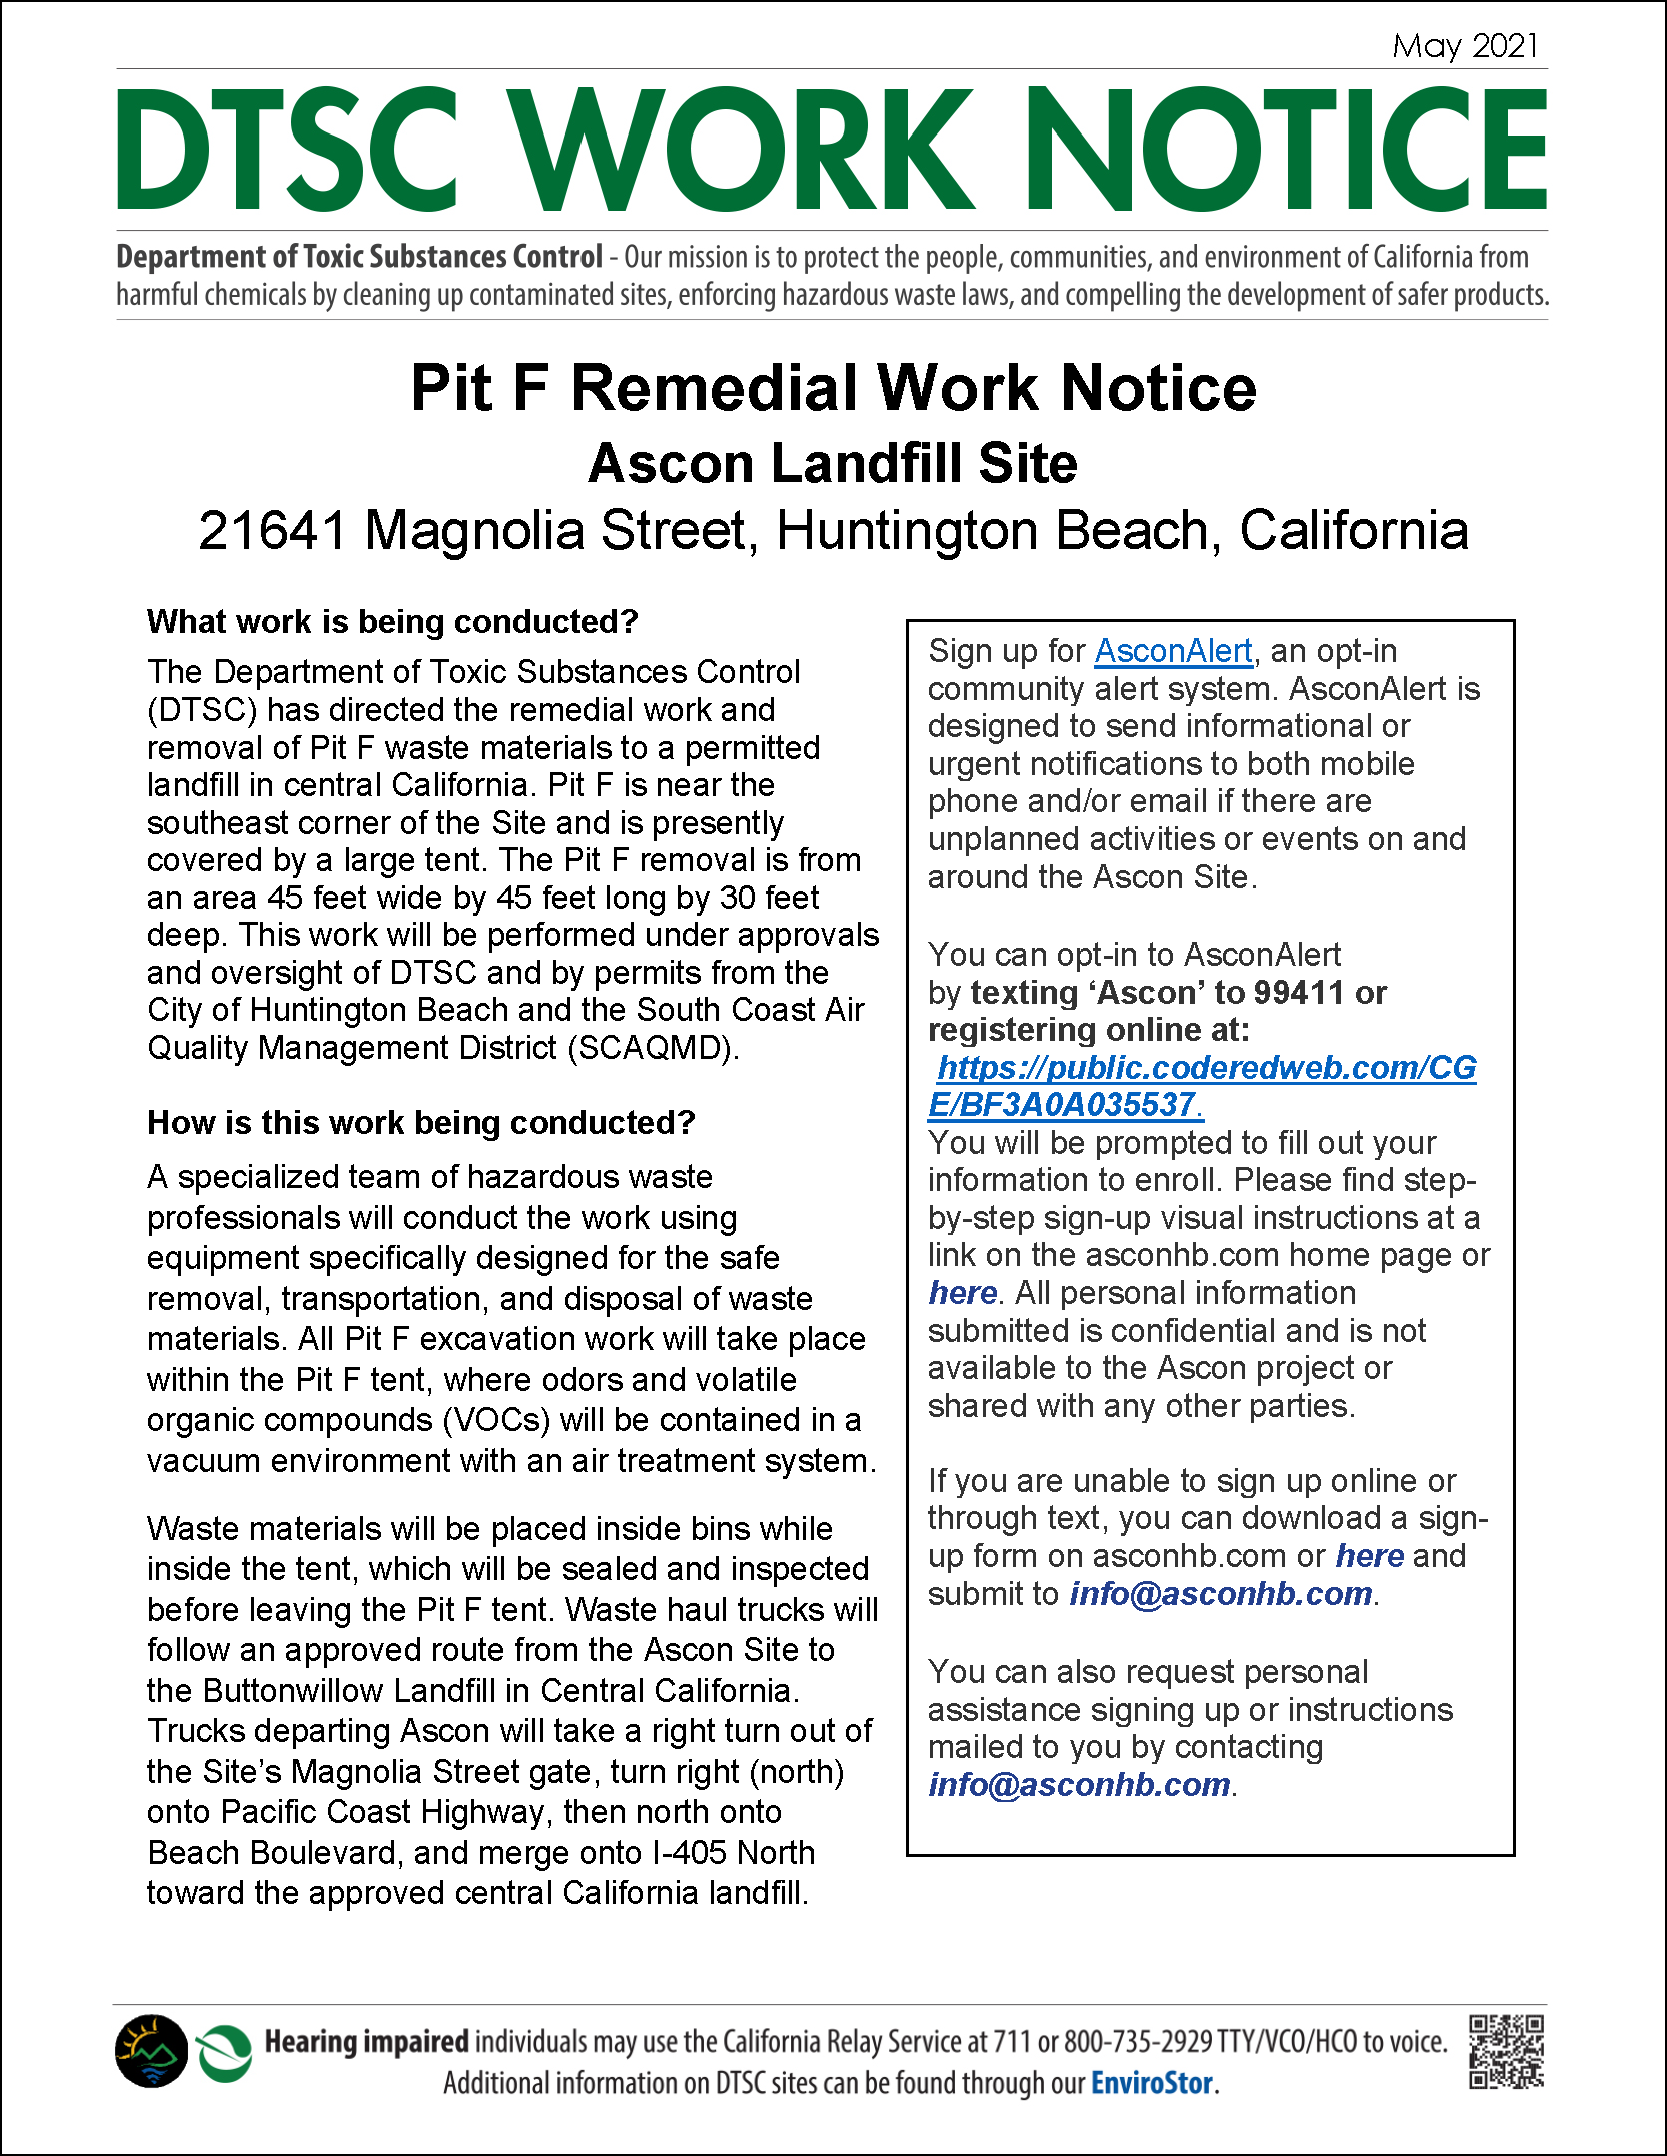 Ascon Landfill Pit F Remedial Work Notice